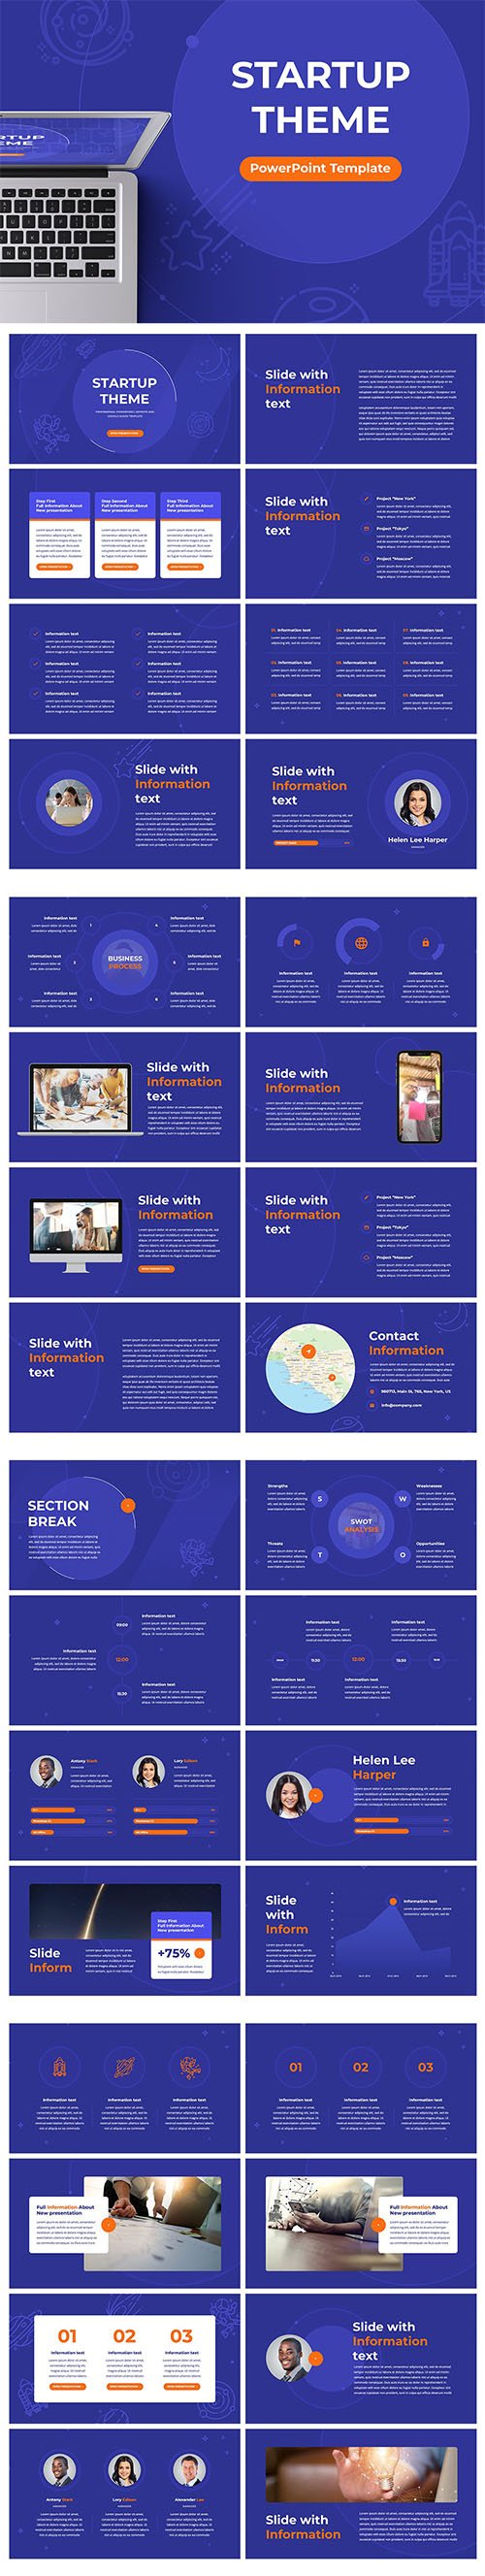 Startup Theme For Powerpoint, Keynote and Google Slides Template